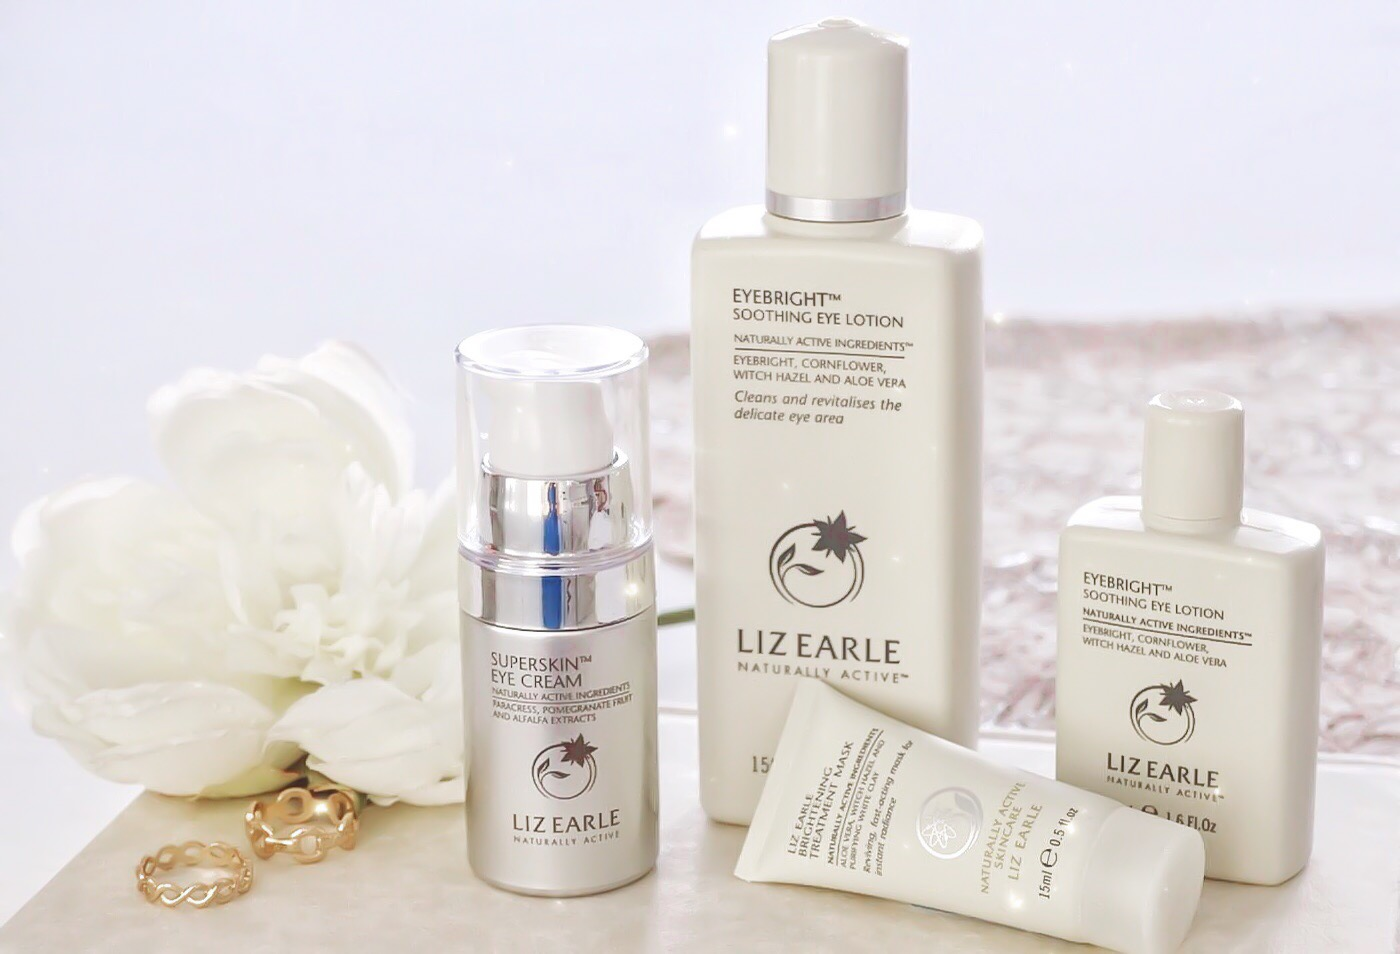 Liz Earle Eye Products - Eye Care 101